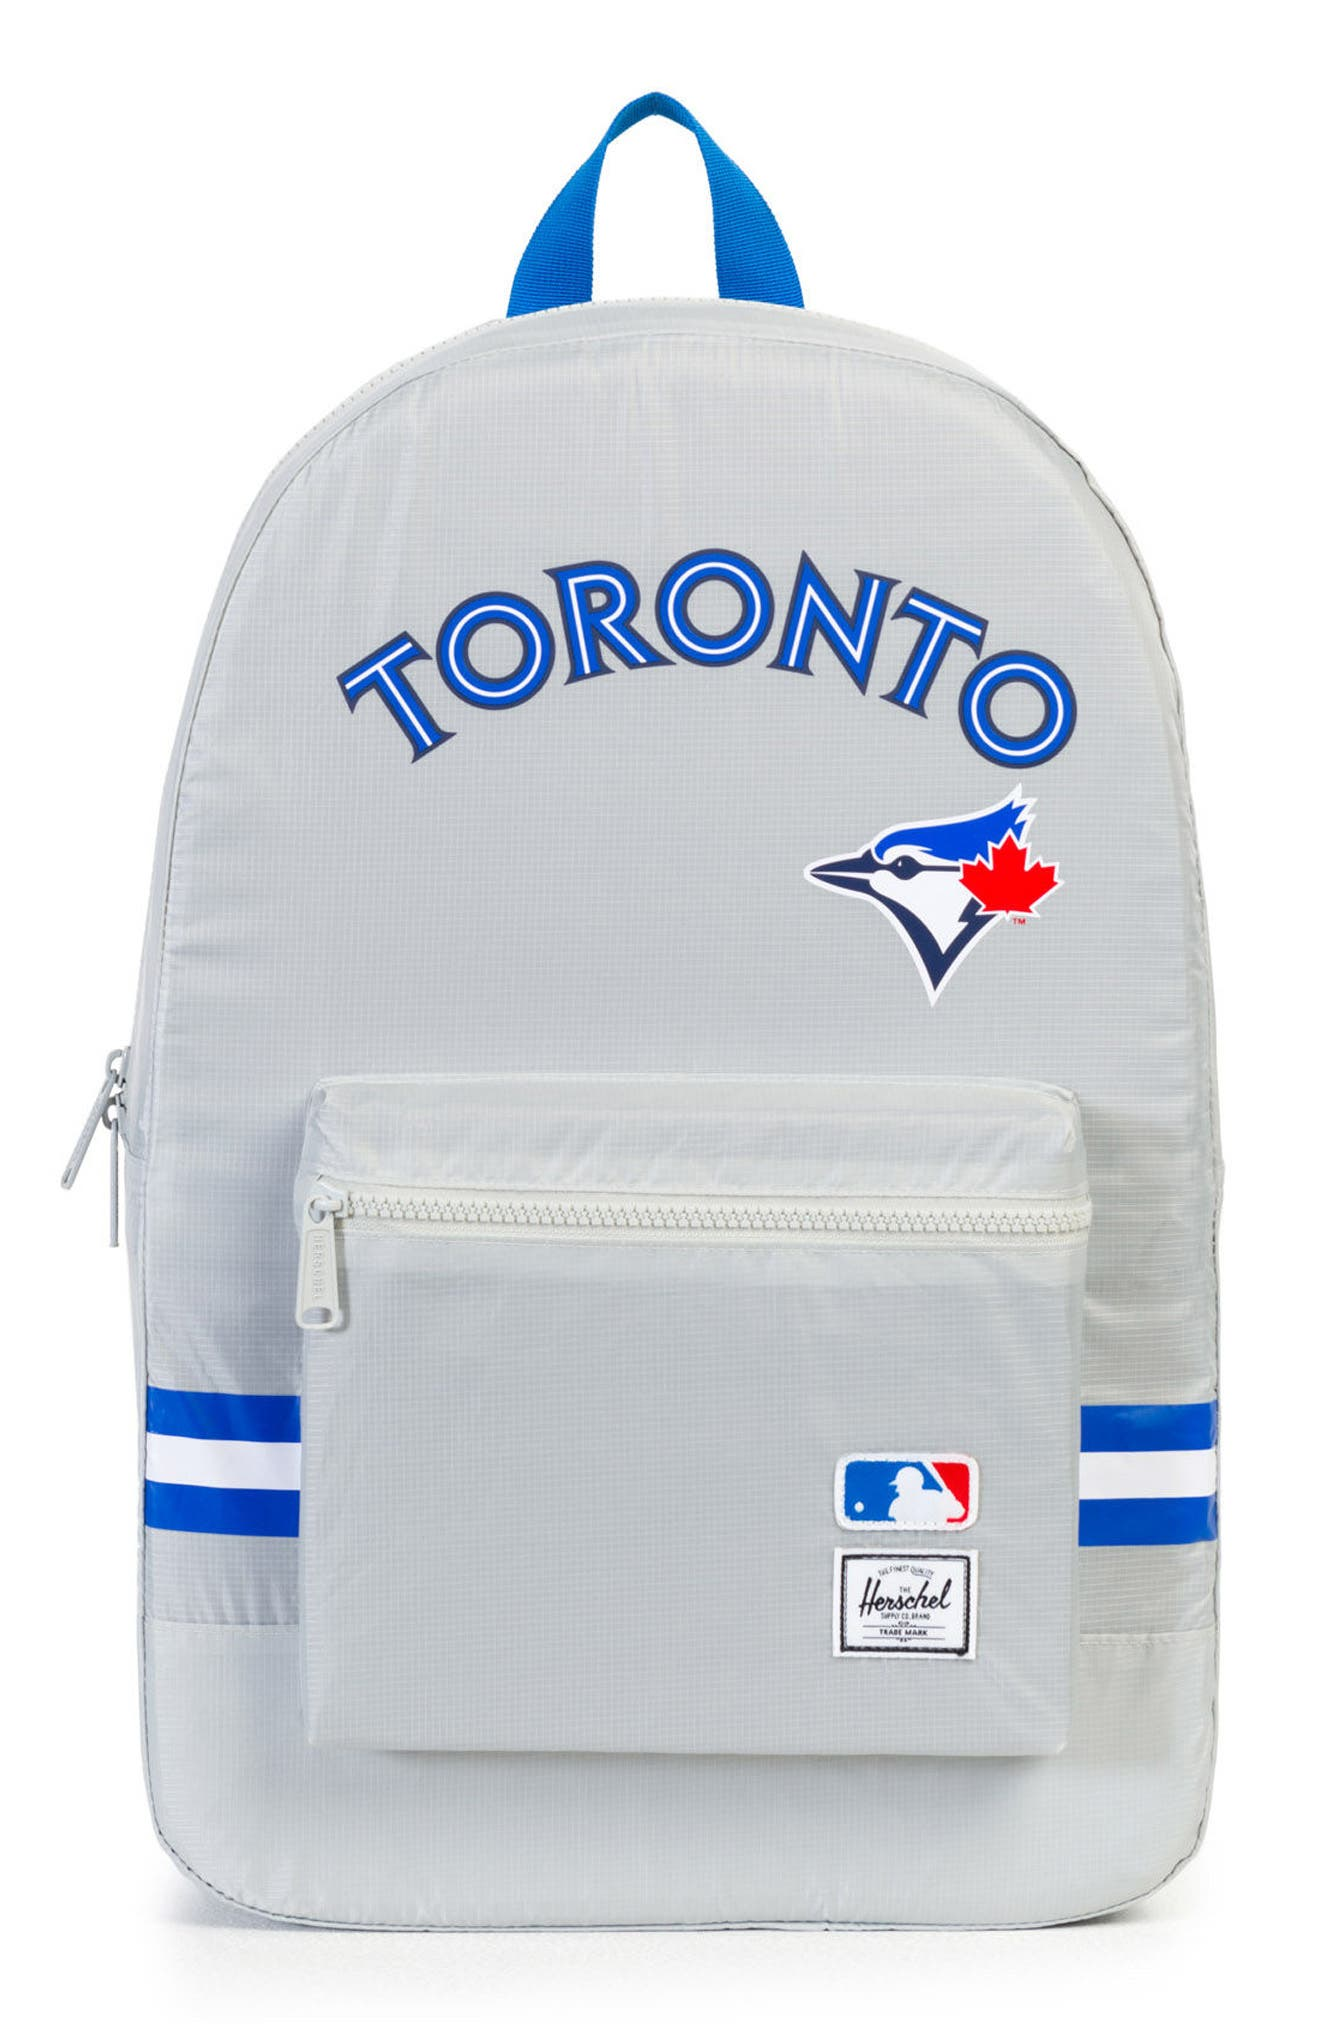 9494176afb8c Herschel Supply Co. Packable - Mlb American League Backpack - Grey In  Toronto Blue Jays